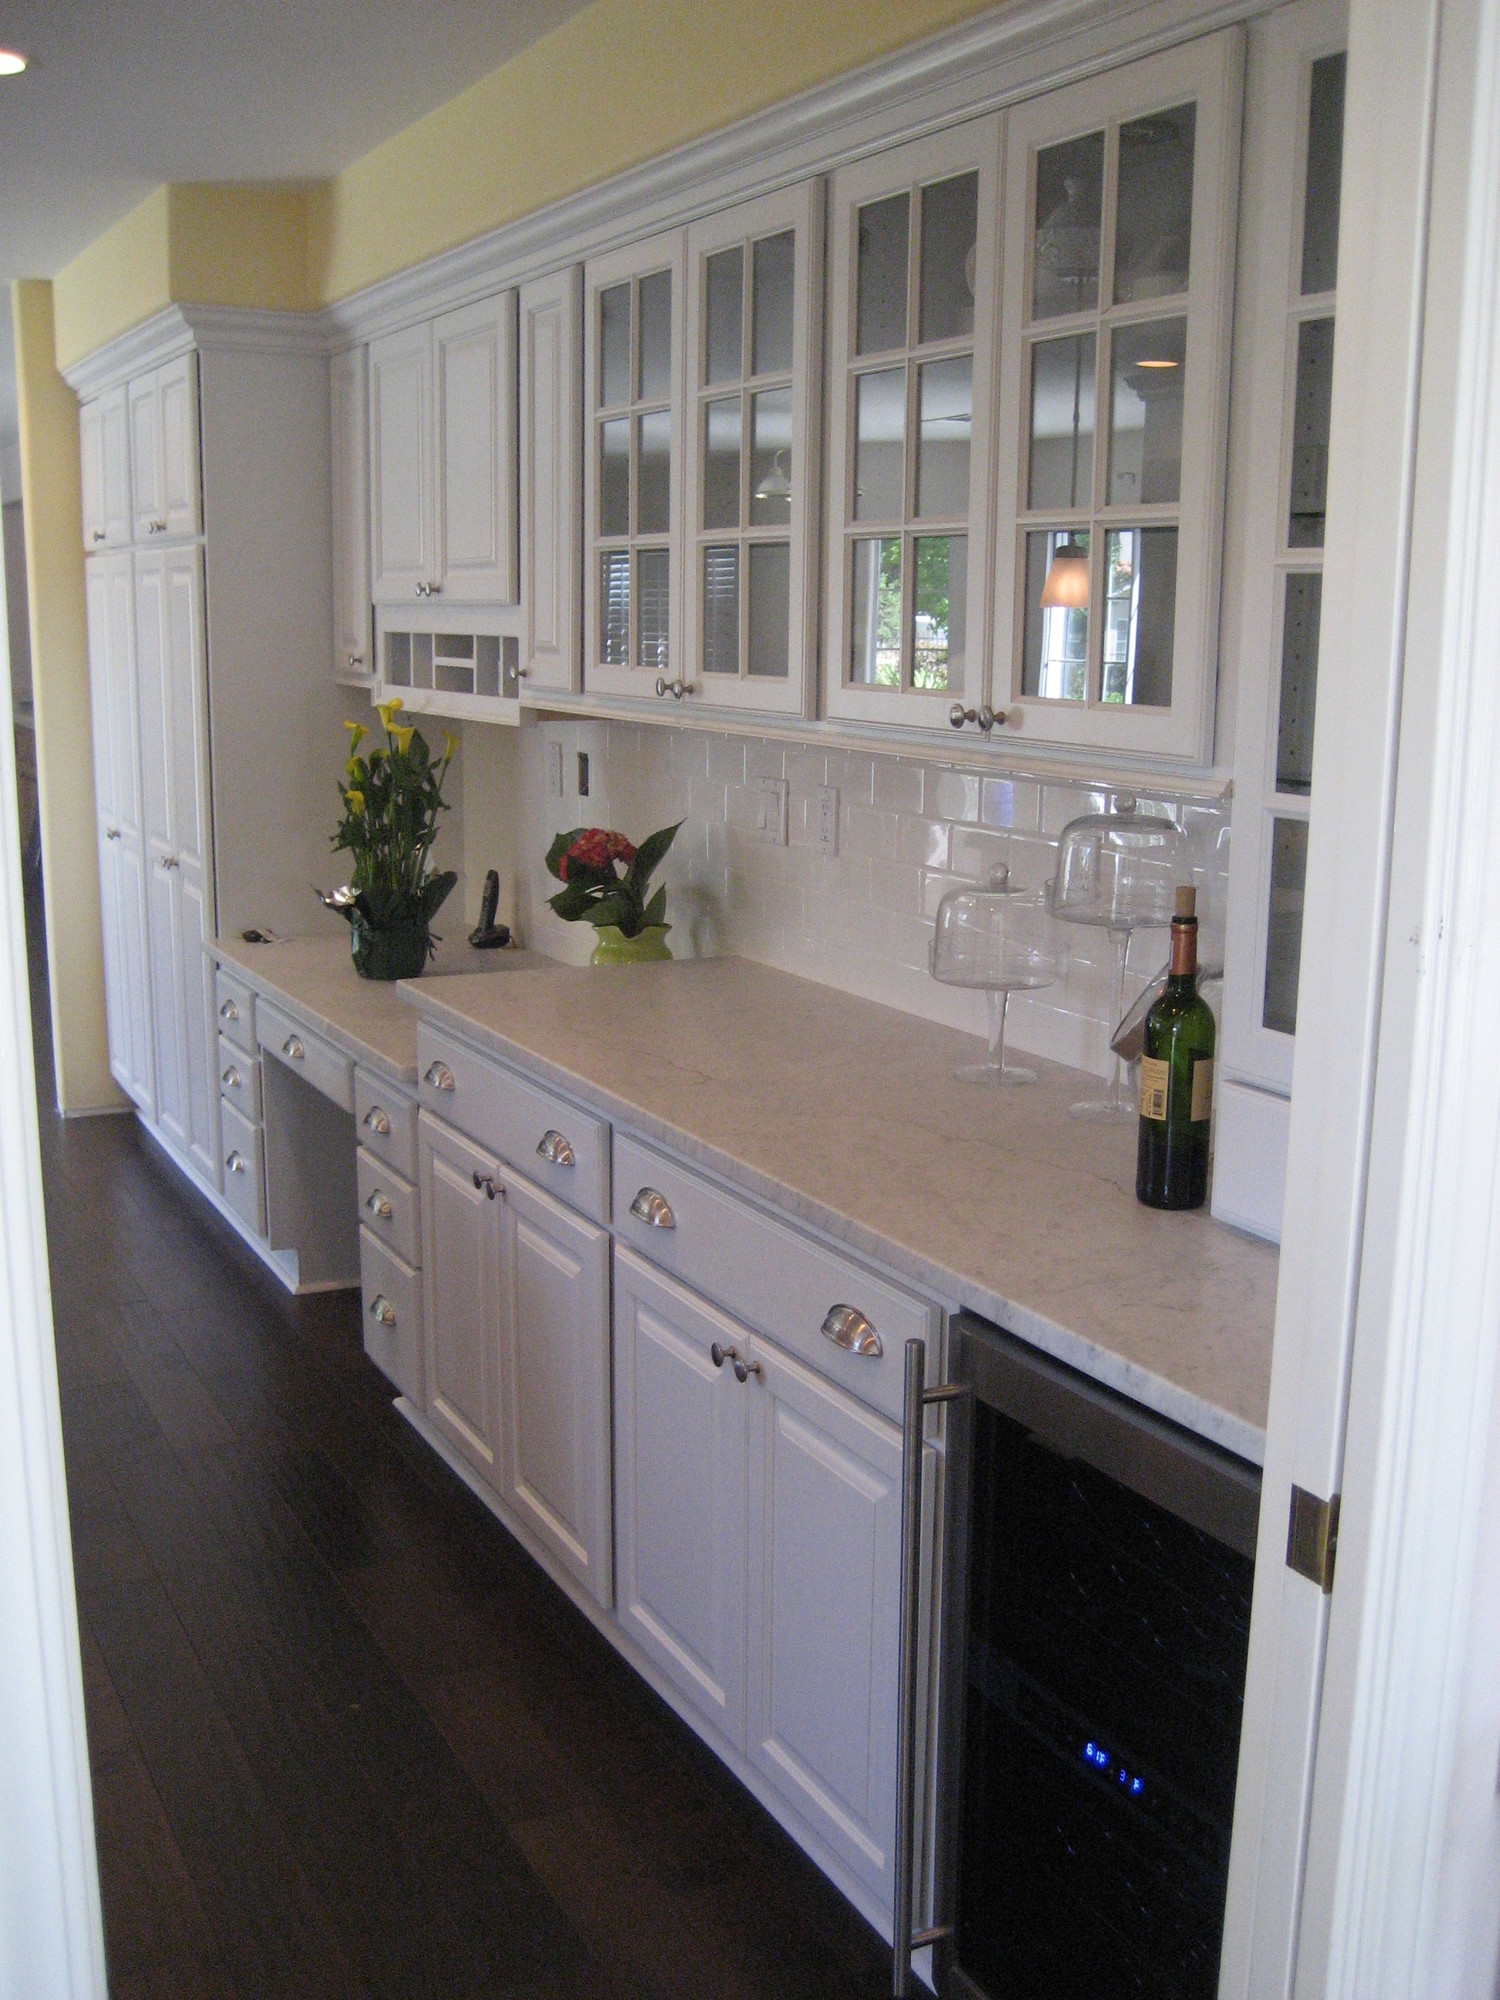 Carter-New-Life-Bath-And-Kitchen-Orcutt-6.jpg